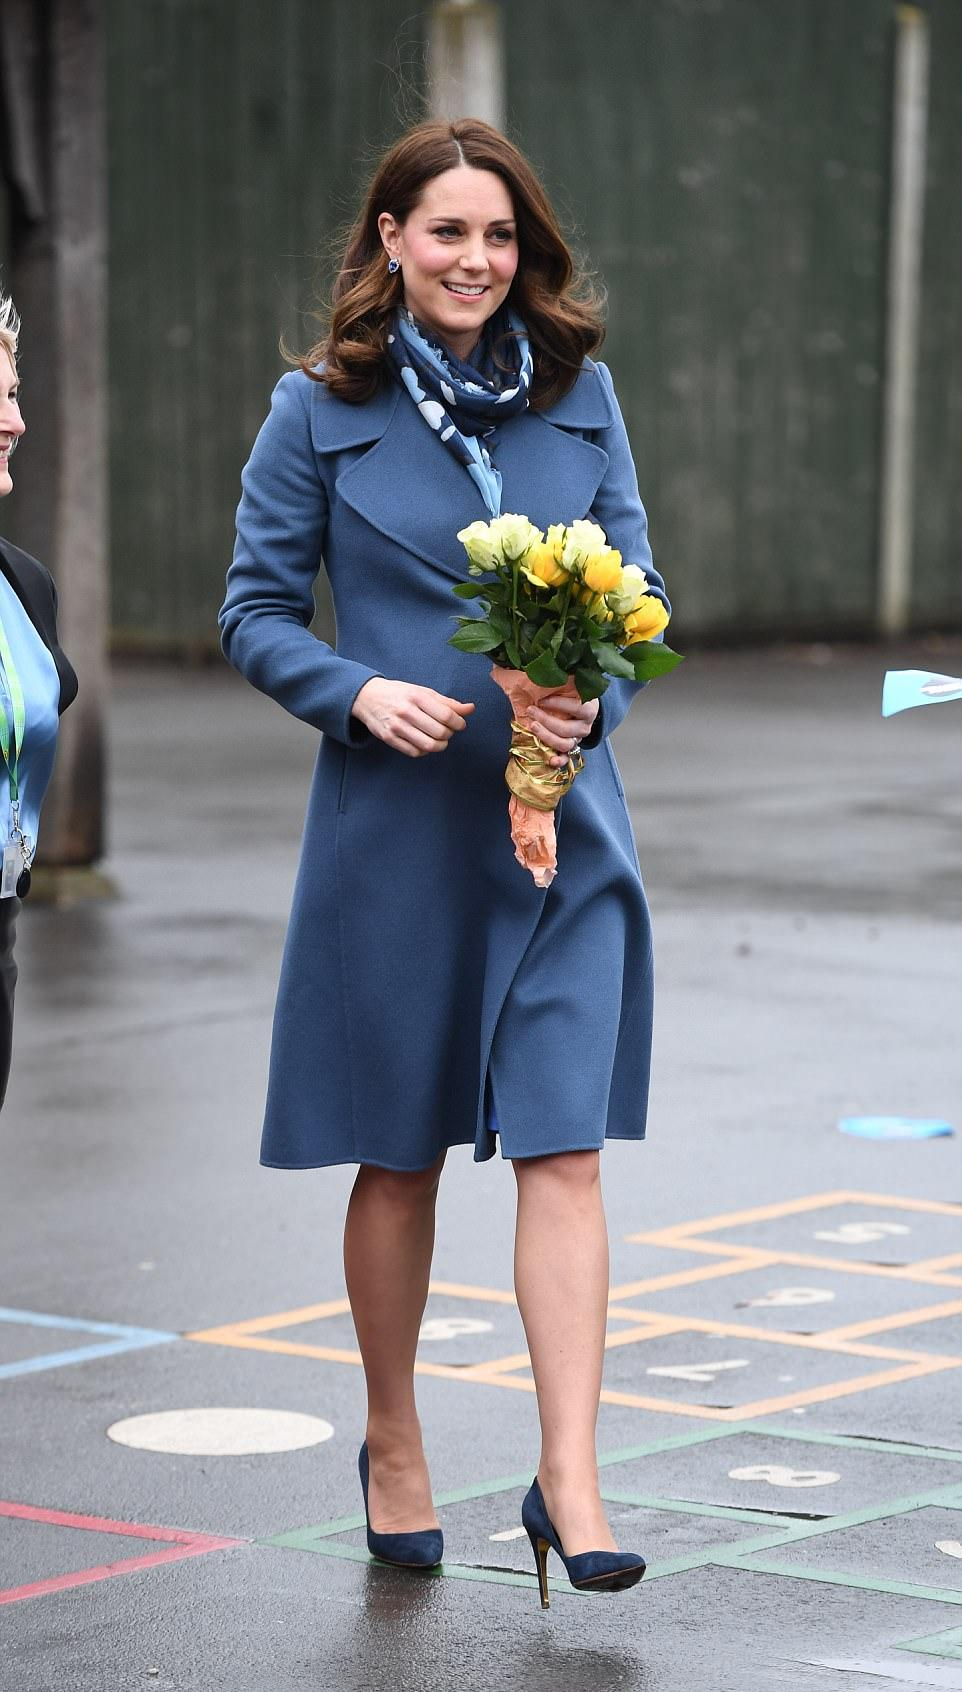 Pregnant Kate Middleton Sports A Lighter Hair Color At Public Event